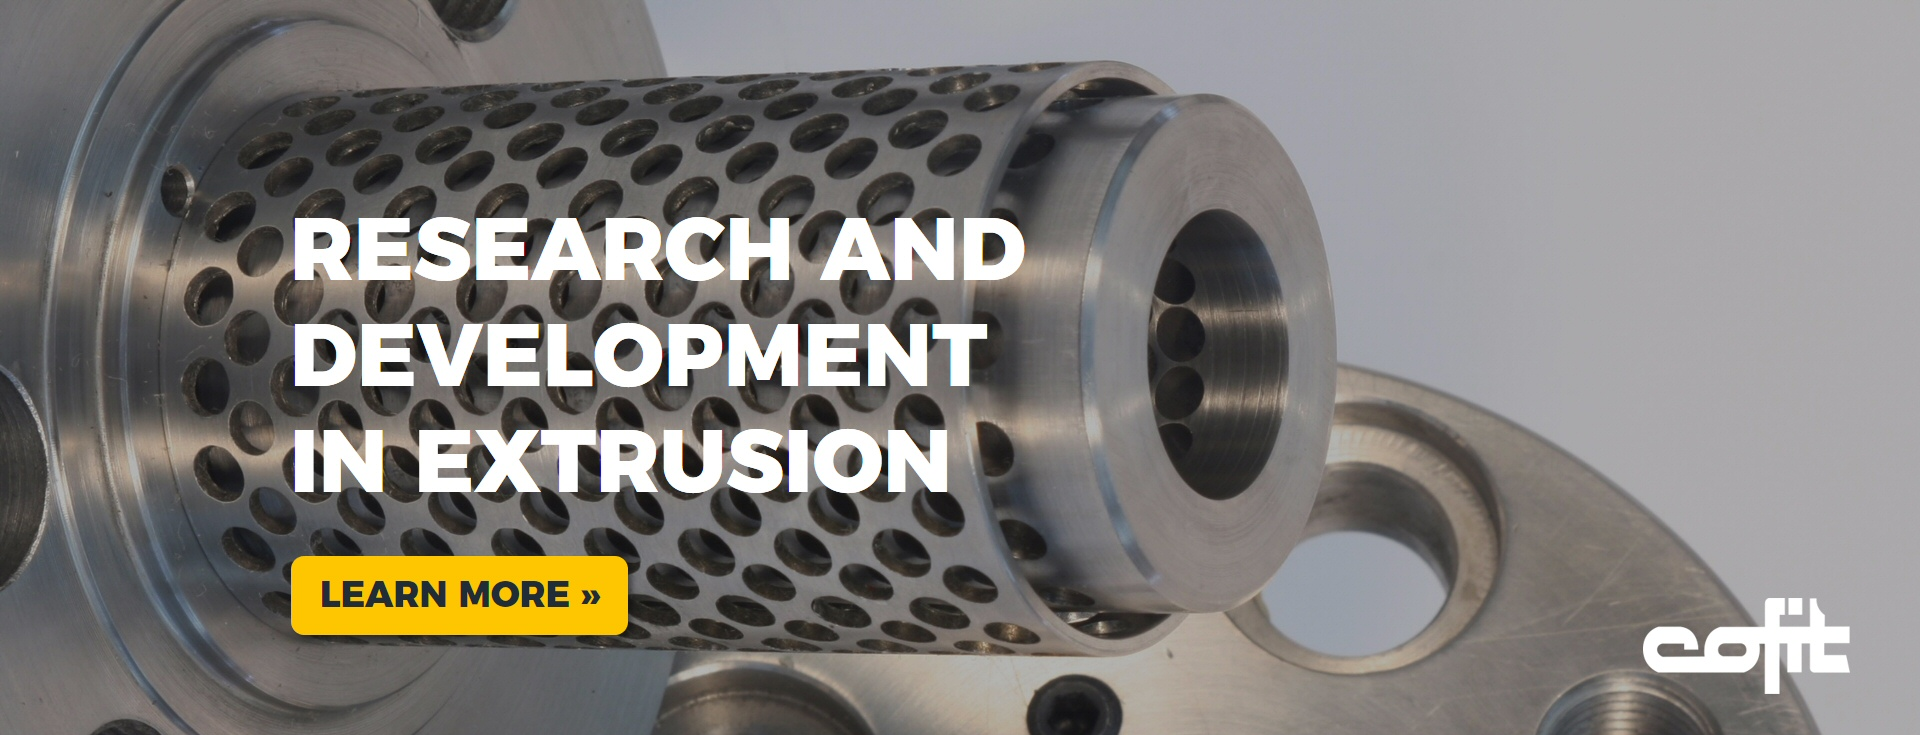 Research and development in extrusion- Cofit